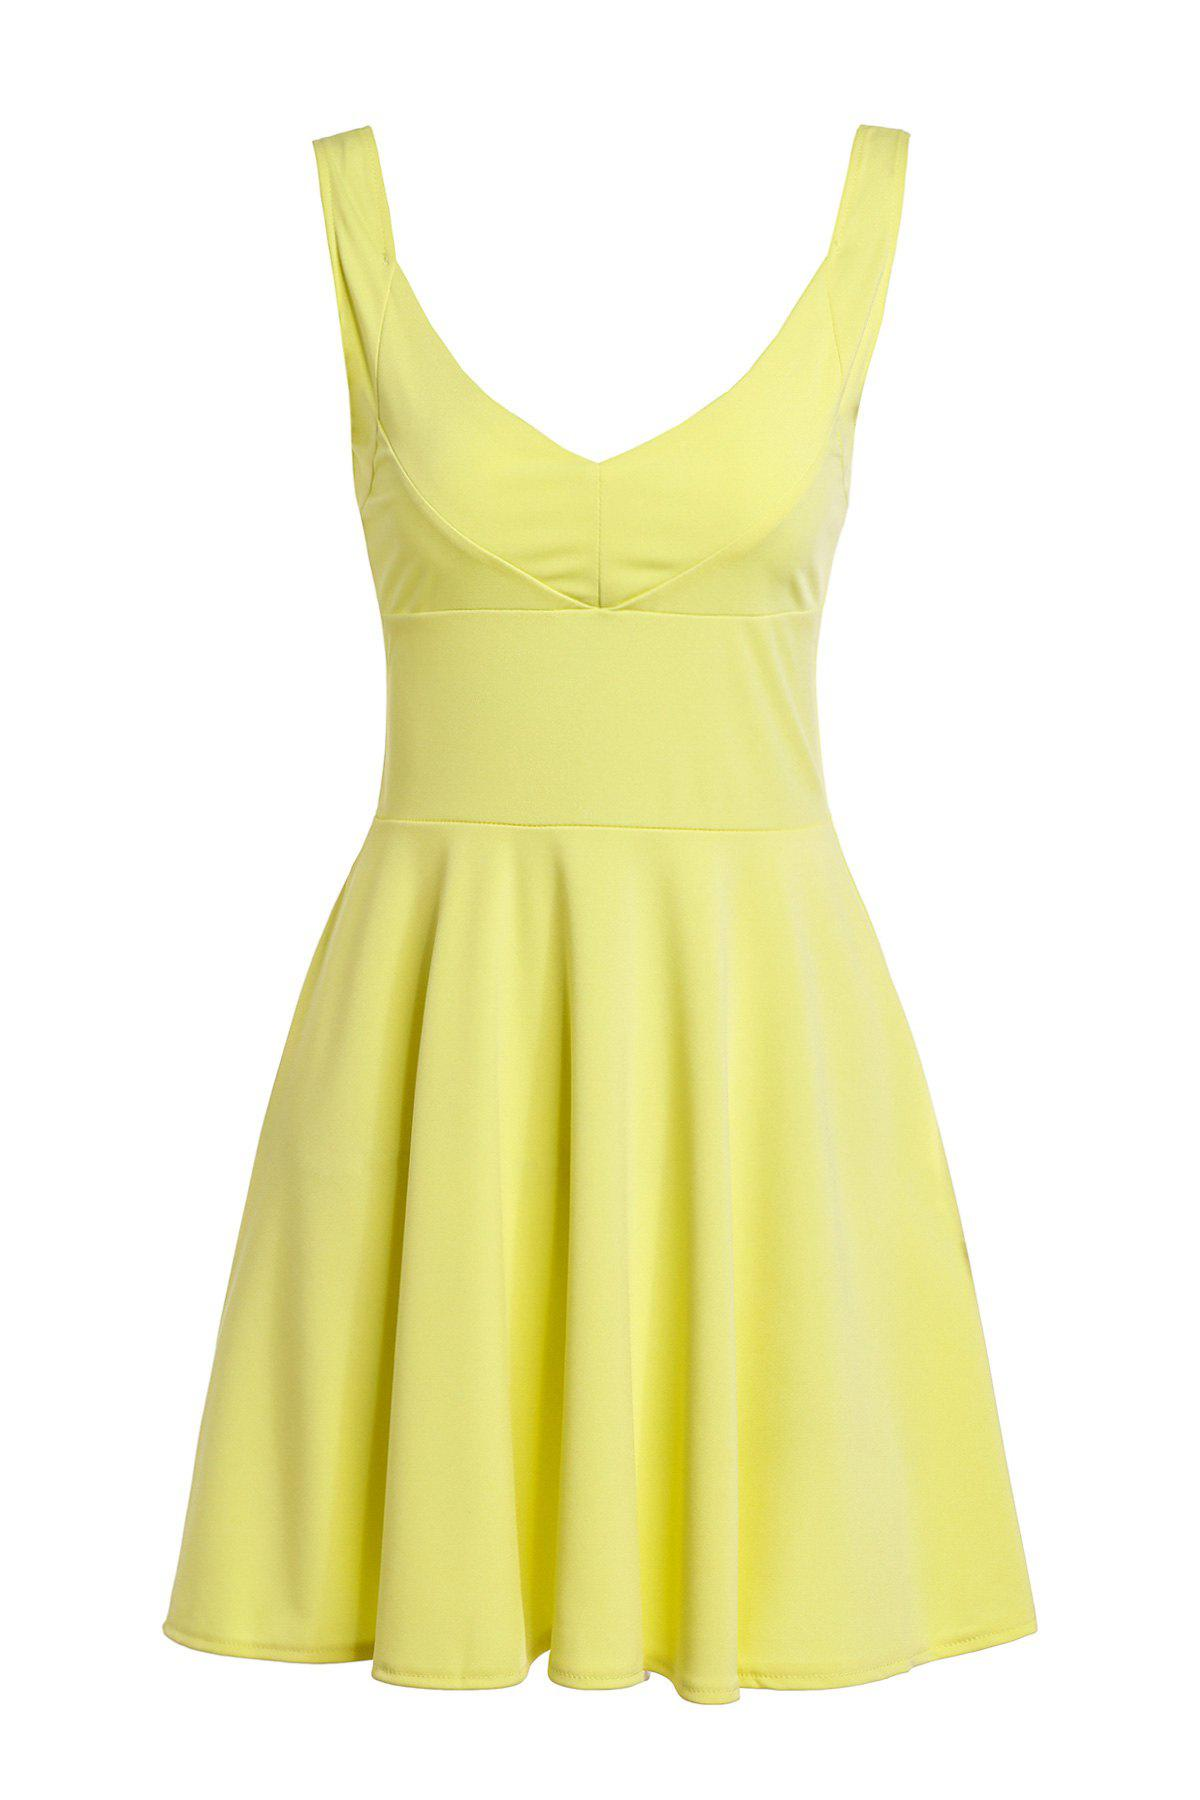 Trendy Sleeveless Plunging Neck Slimming Solid Color Women's Dress - YELLOW S